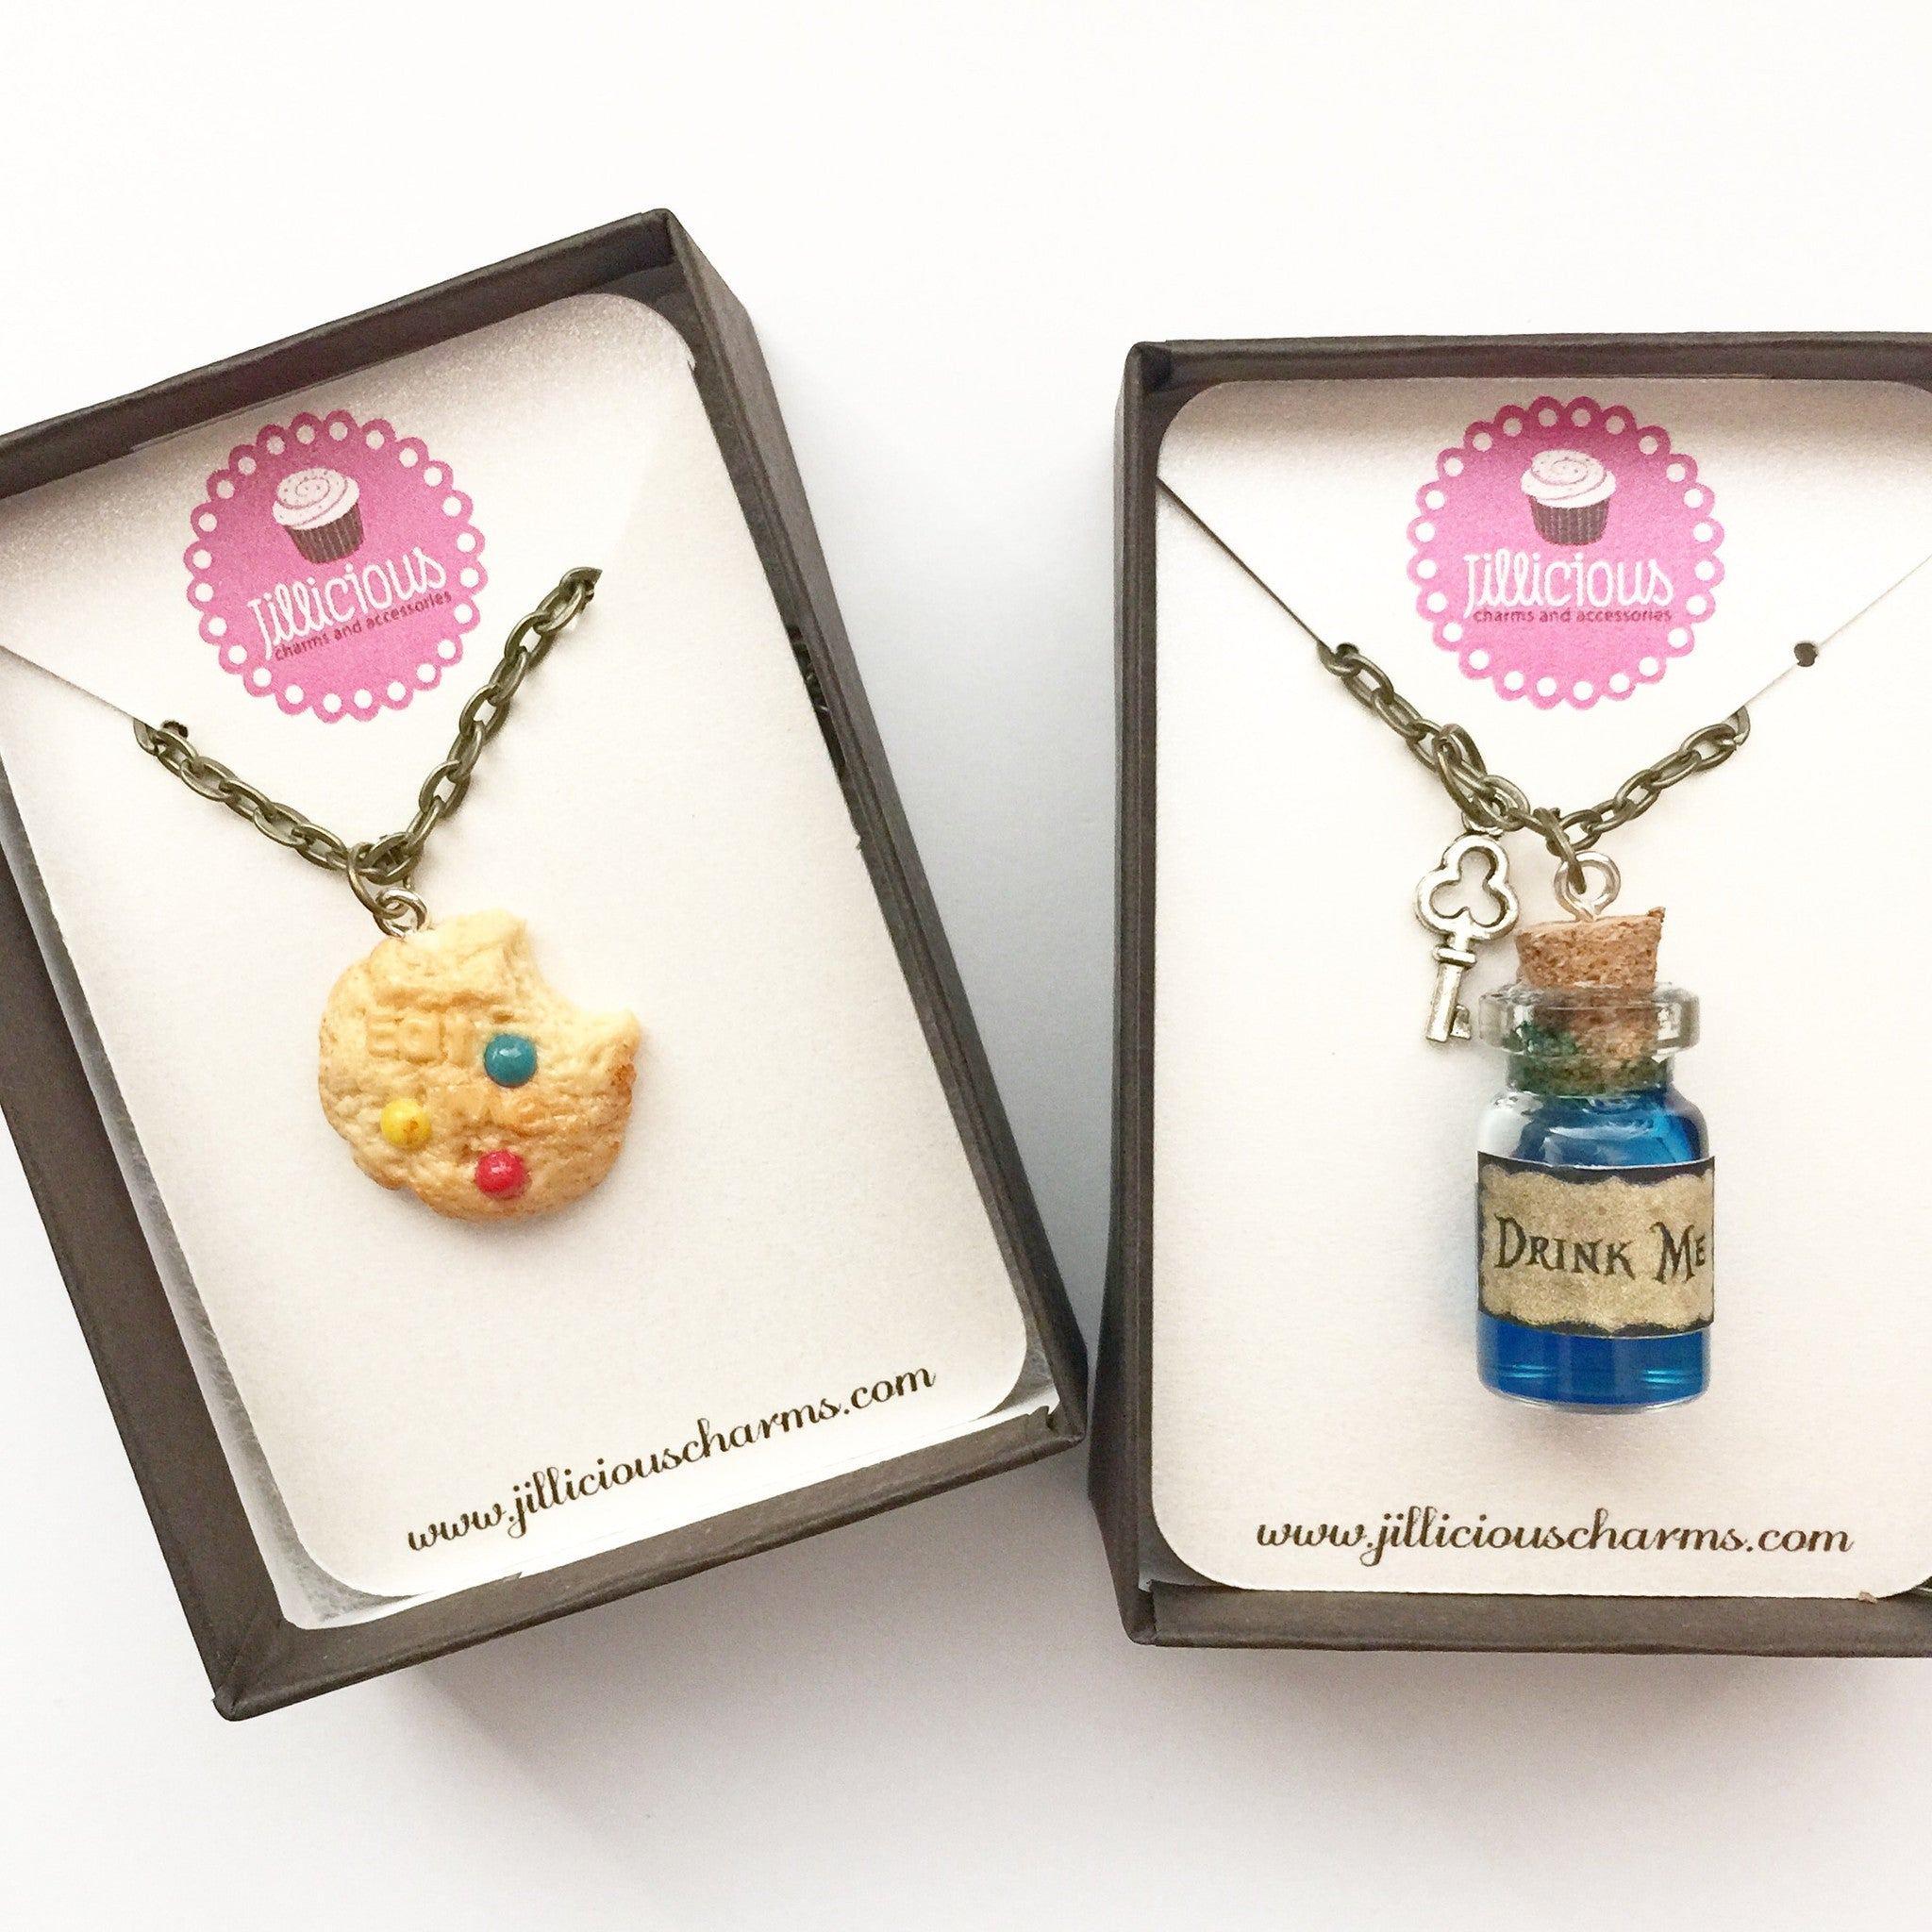 Alice in Wonderland Inspired Friendship Necklace Set- Eat me and Drink me Necklace - Jillicious charms and accessories